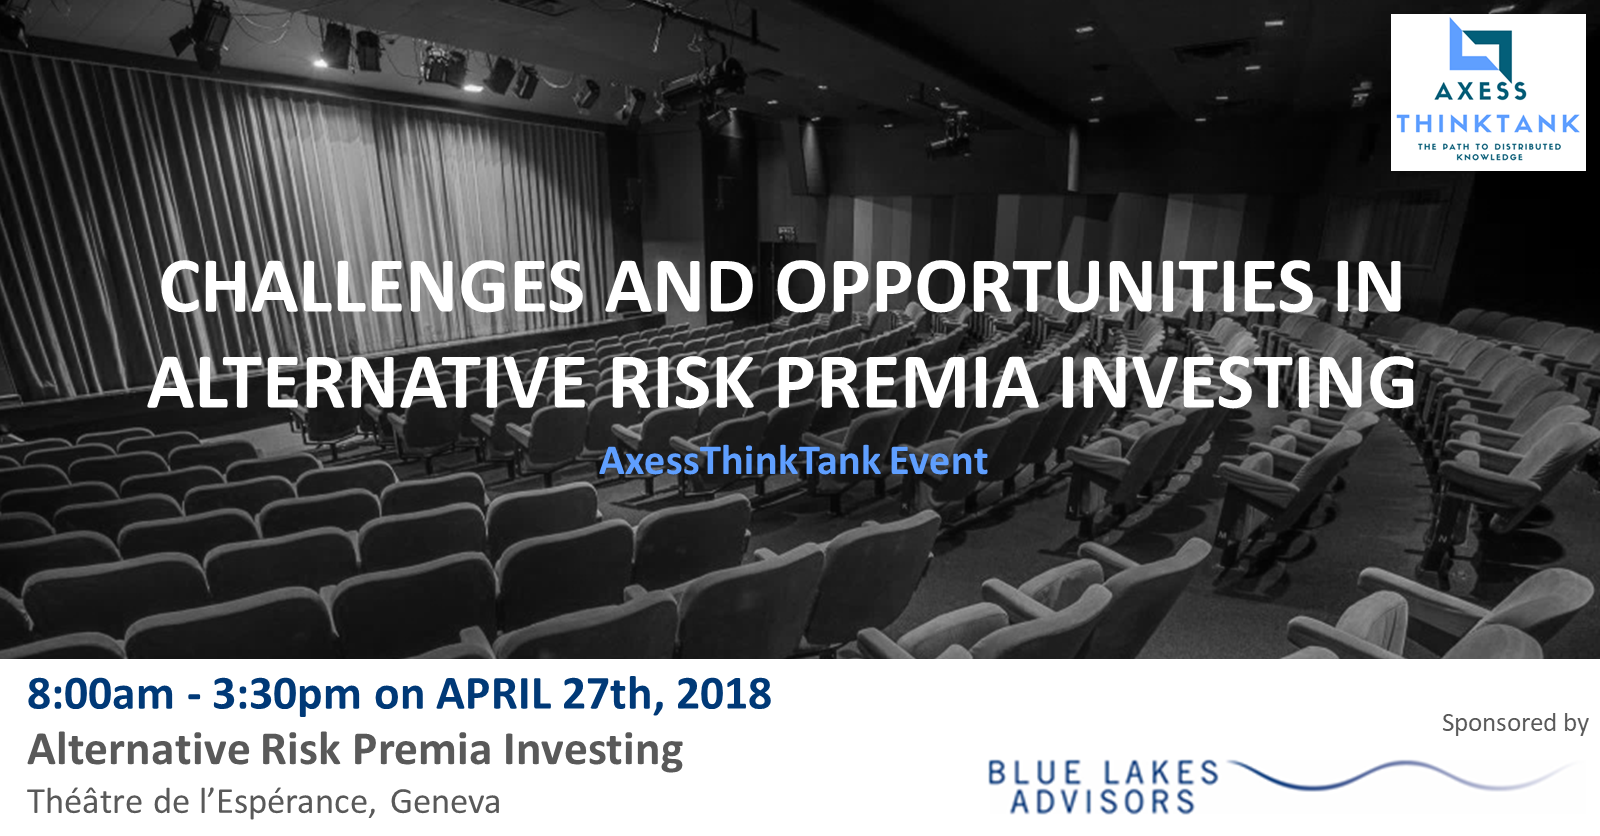 Blue-Lakes-Advisors-investment-finance blog-ATT Event - LinkedIn- 27.03.2018